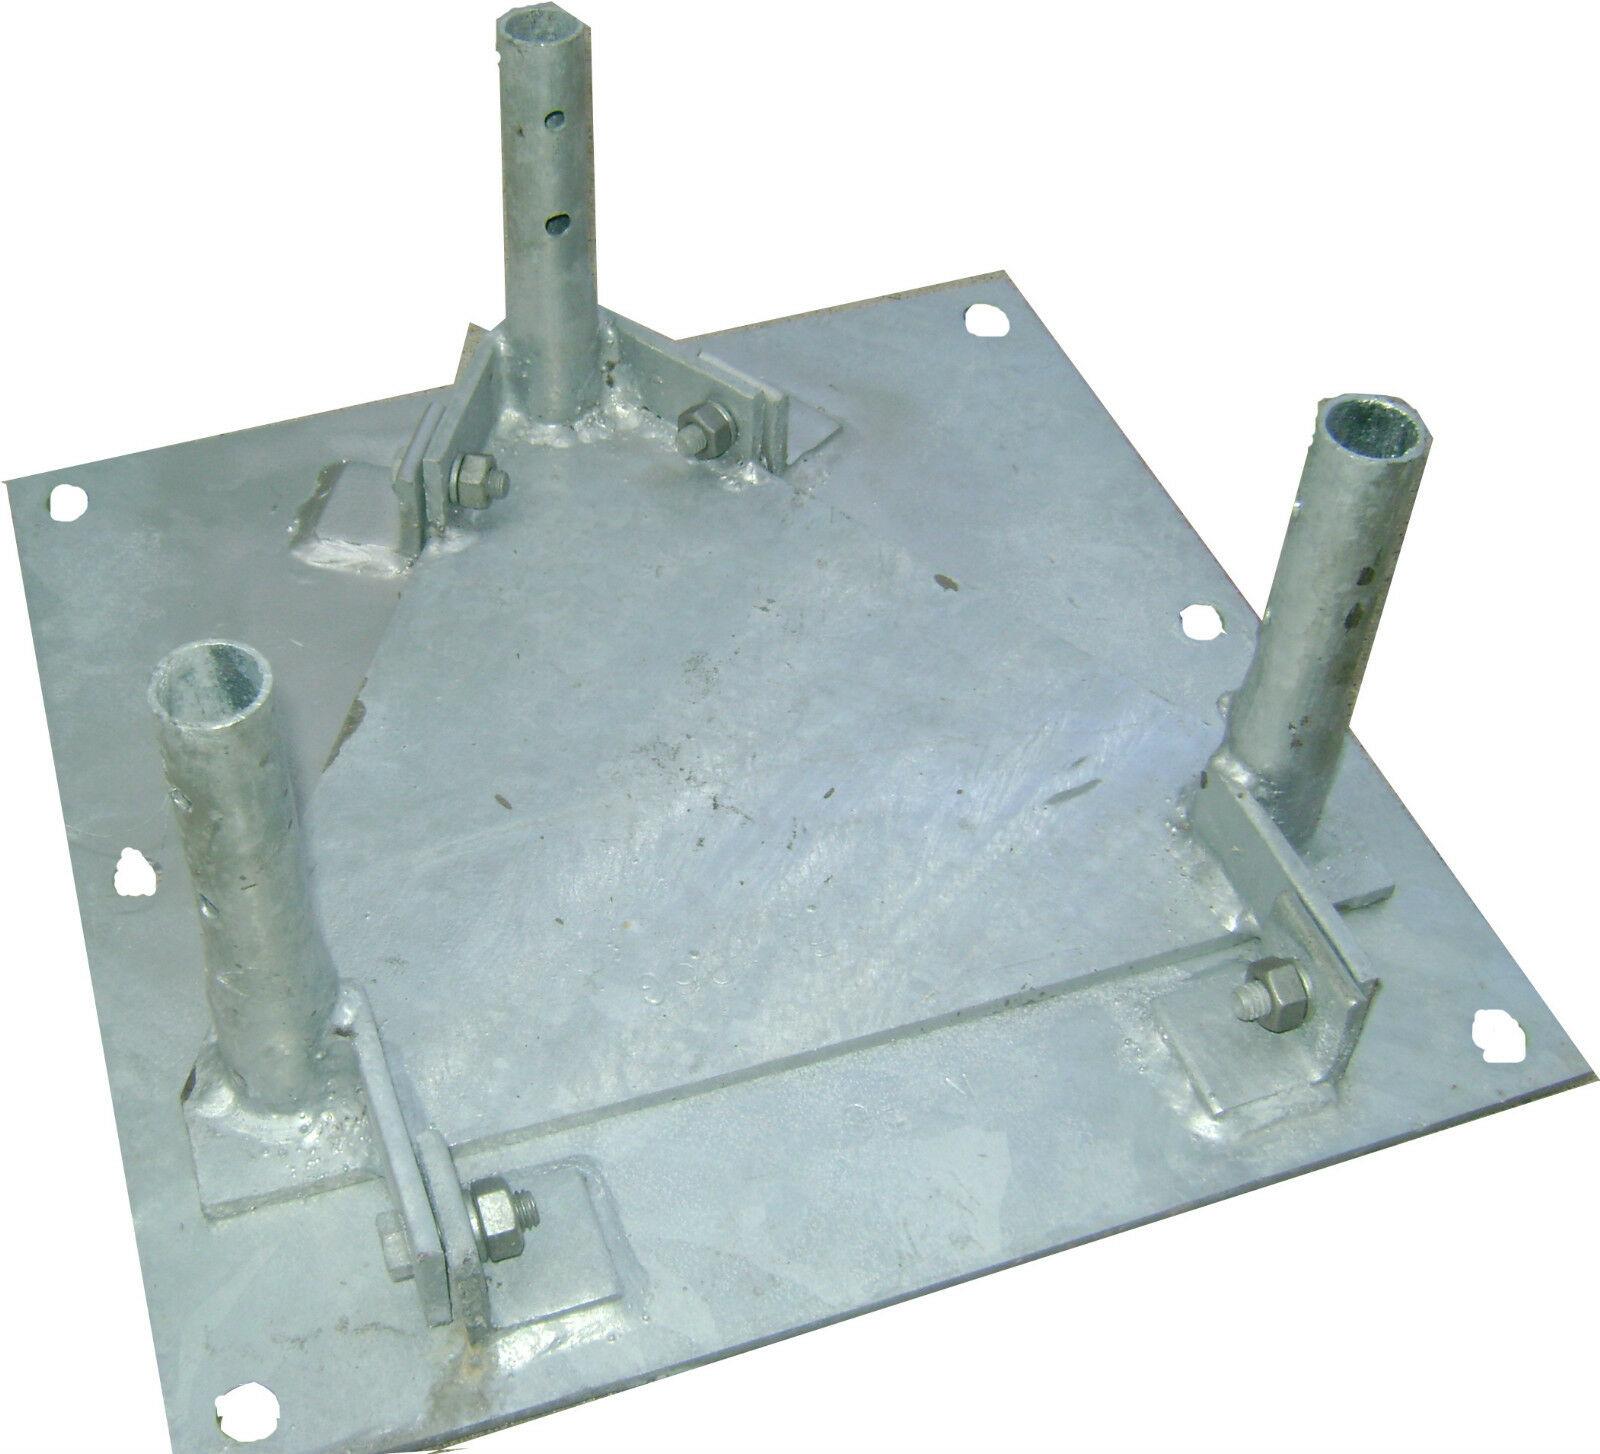 ROHN BPH25G Hinged Base Plate for 25G Towers ** R-BPH25G ** Genuine OEM Product. Buy it now for 370.00